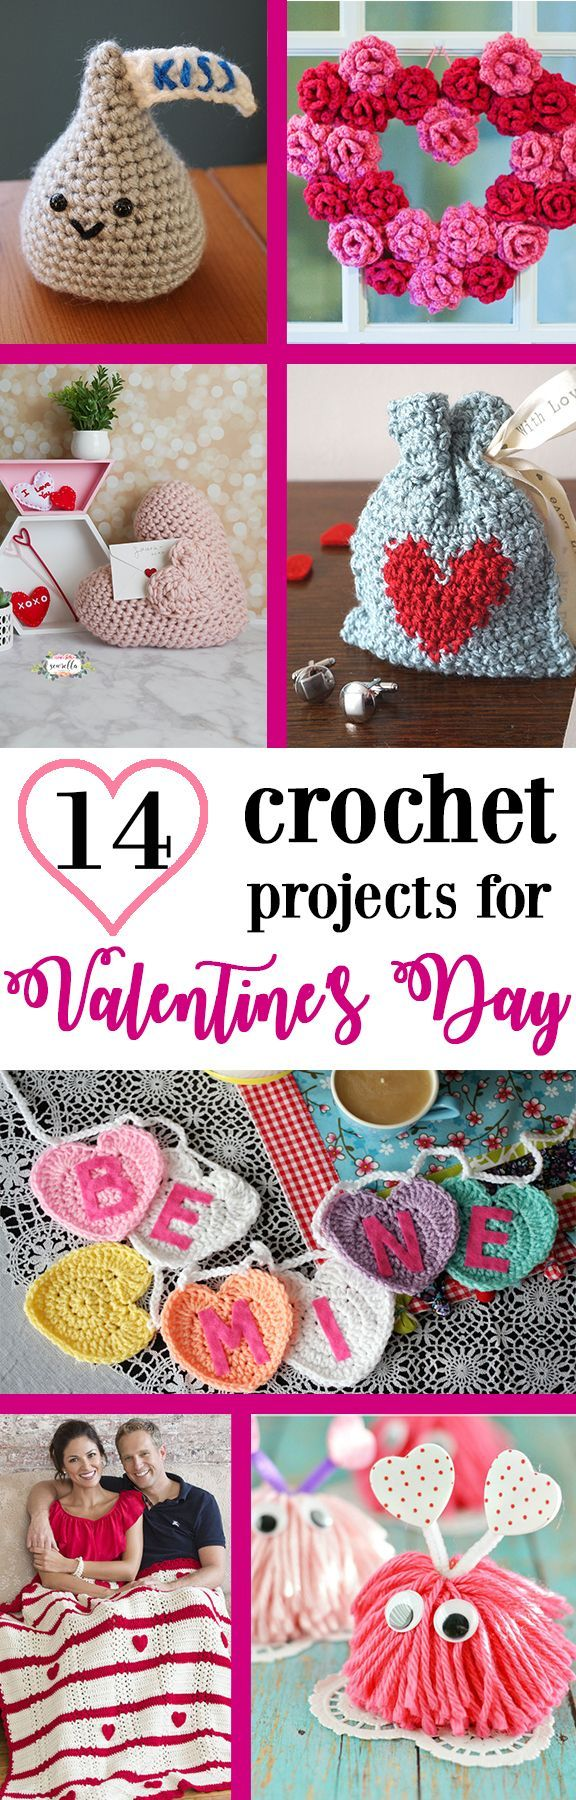 I've rounded up my 14 favorite Valentine's Day projects to crochet! Make them for your sweetie with hearts and roses abounding! | Free crochet roundup from Sewrella